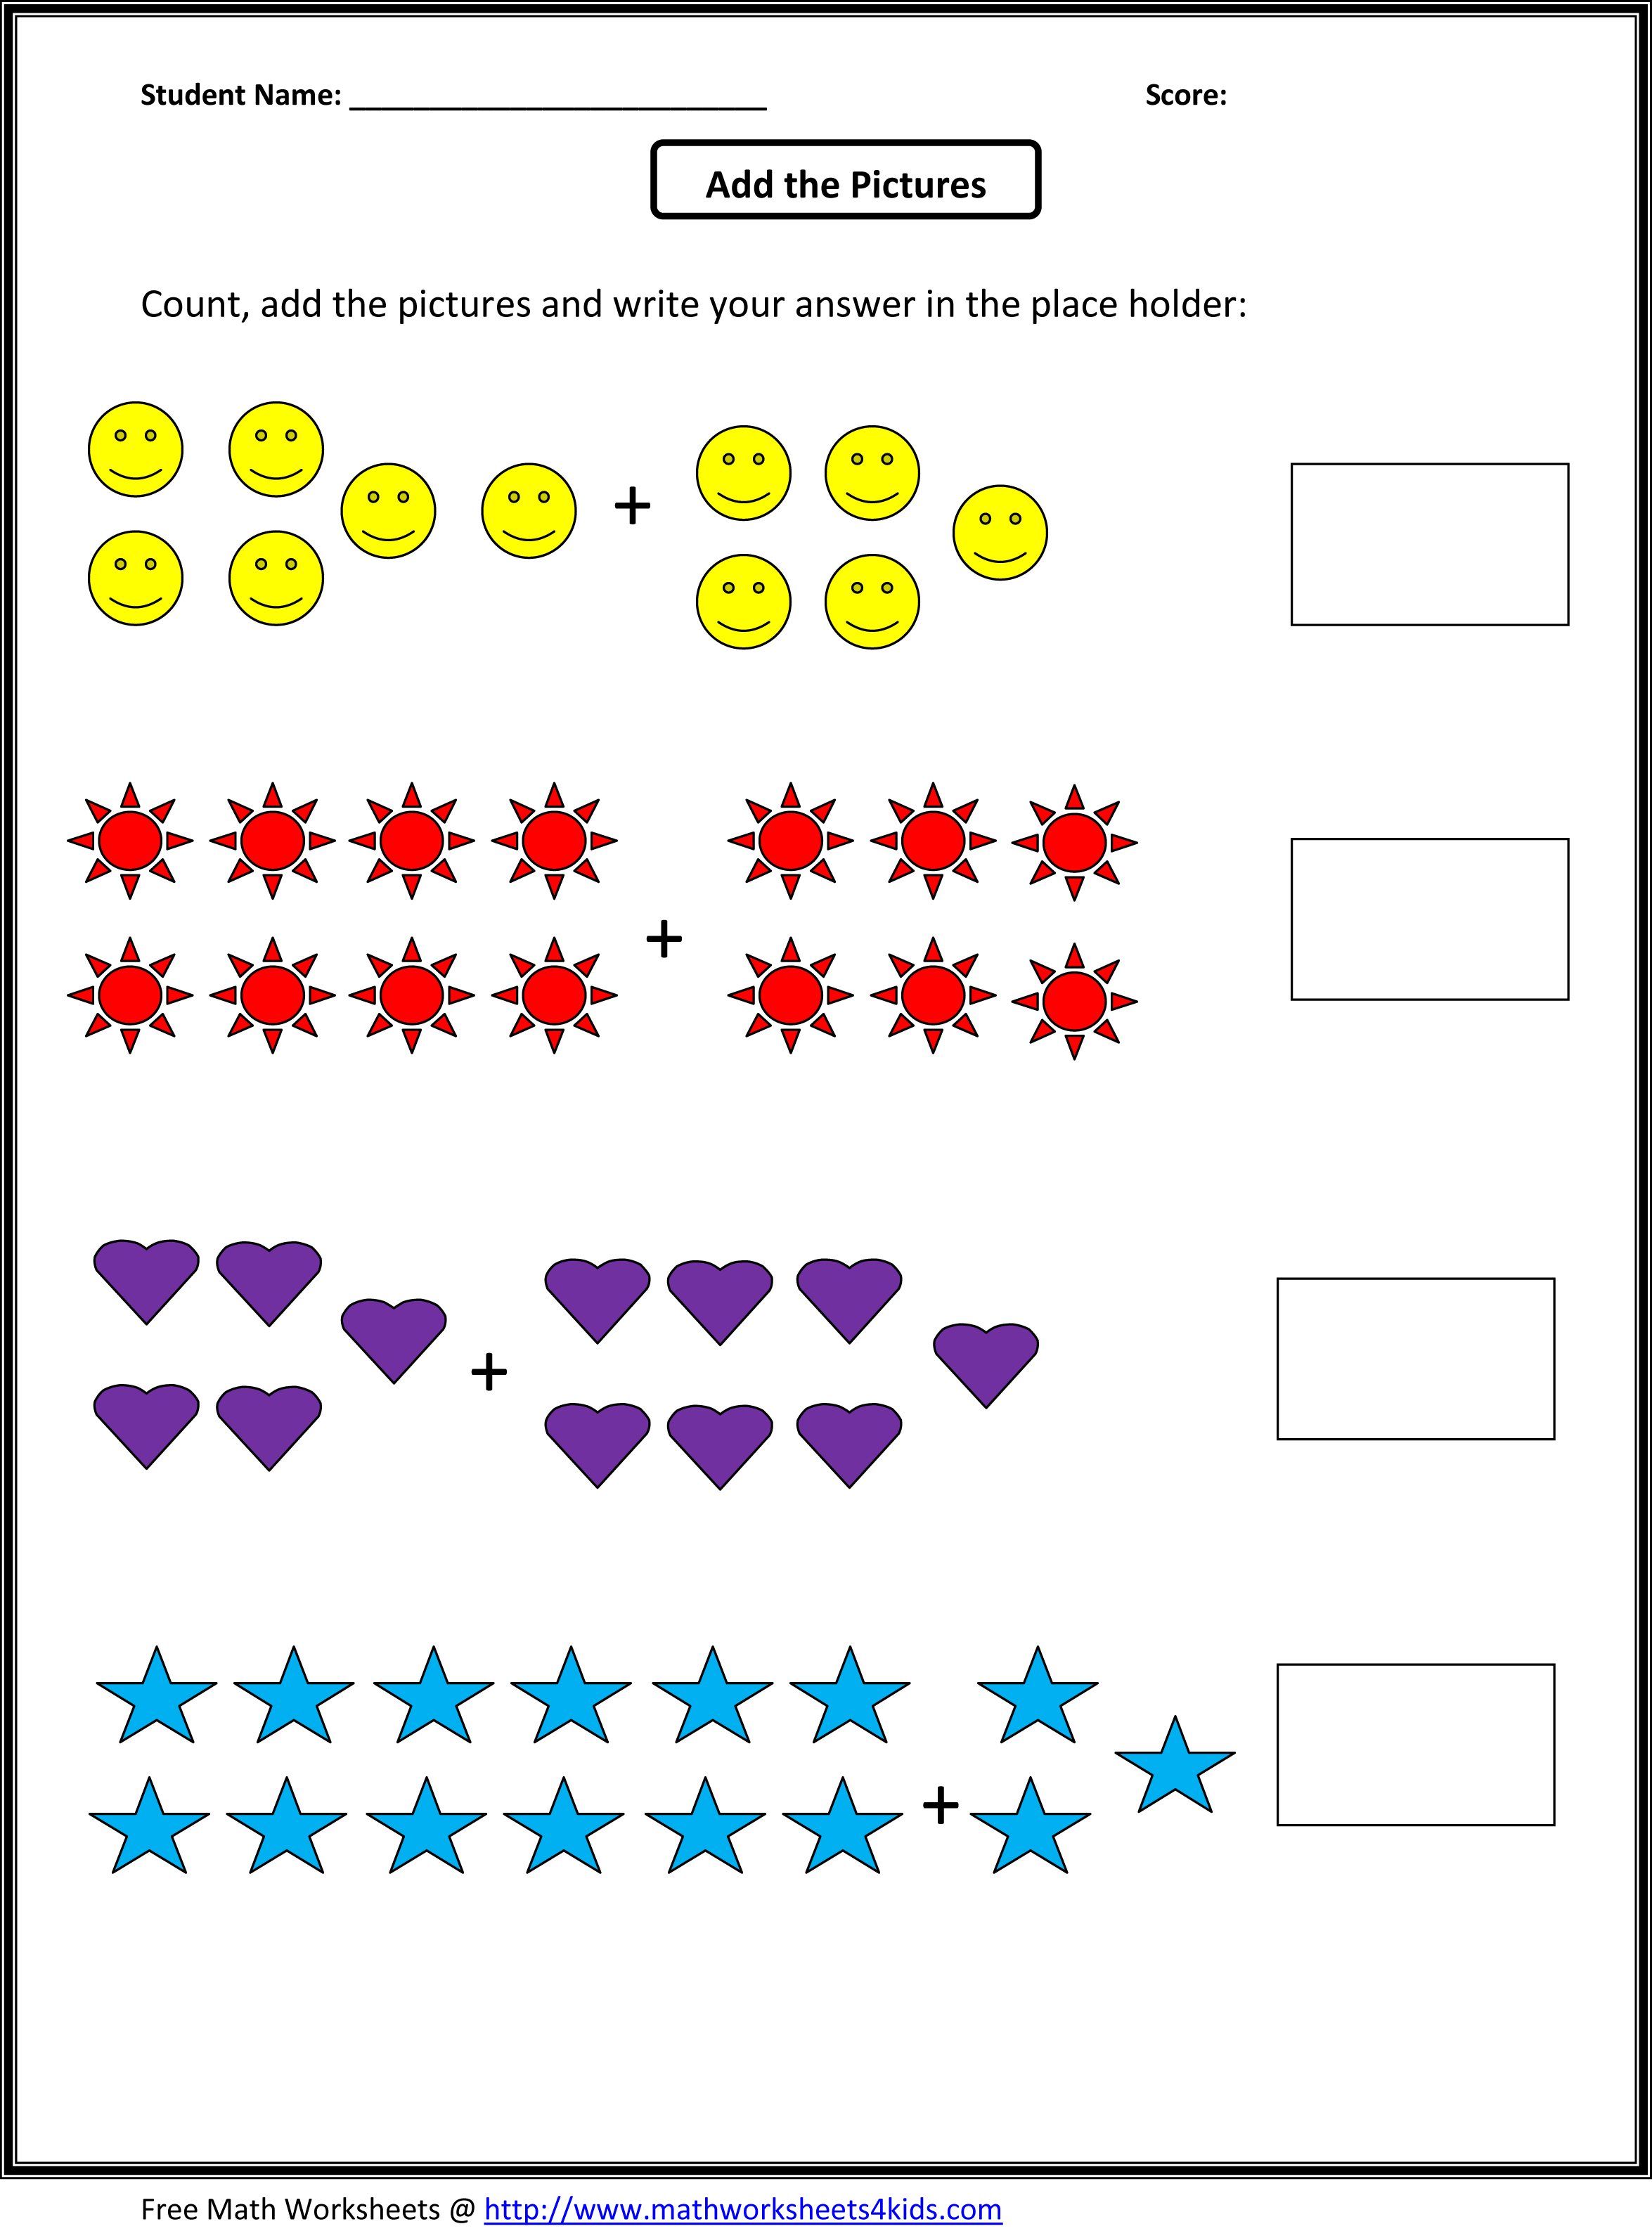 Proatmealus  Stunning Grade  Maths Worksheet  Reocurent With Fascinating Math Worksheets For St Grade Free  Reocurent With Charming Numbers  Worksheets For Kindergarten Also Histogram Worksheet With Answers In Addition Free Math Division Worksheets And Power And Exponents Worksheet As Well As Reading Thermometers Worksheets Additionally Adjective Worksheets Free From Reocurentcom With Proatmealus  Fascinating Grade  Maths Worksheet  Reocurent With Charming Math Worksheets For St Grade Free  Reocurent And Stunning Numbers  Worksheets For Kindergarten Also Histogram Worksheet With Answers In Addition Free Math Division Worksheets From Reocurentcom